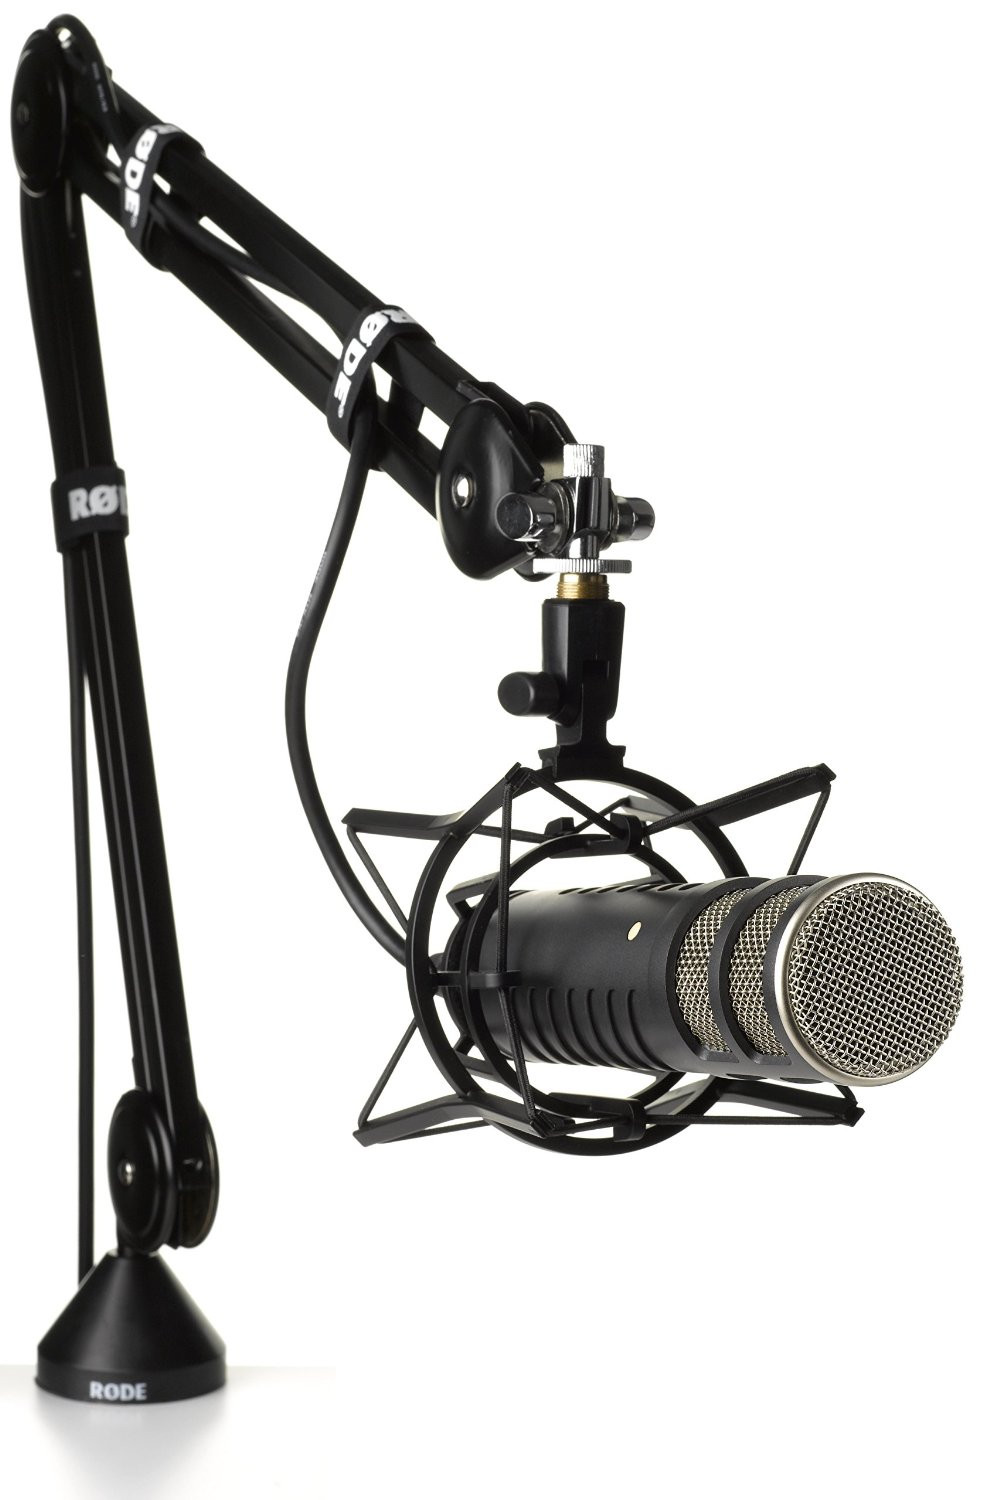 Rode microphone swing mount. e